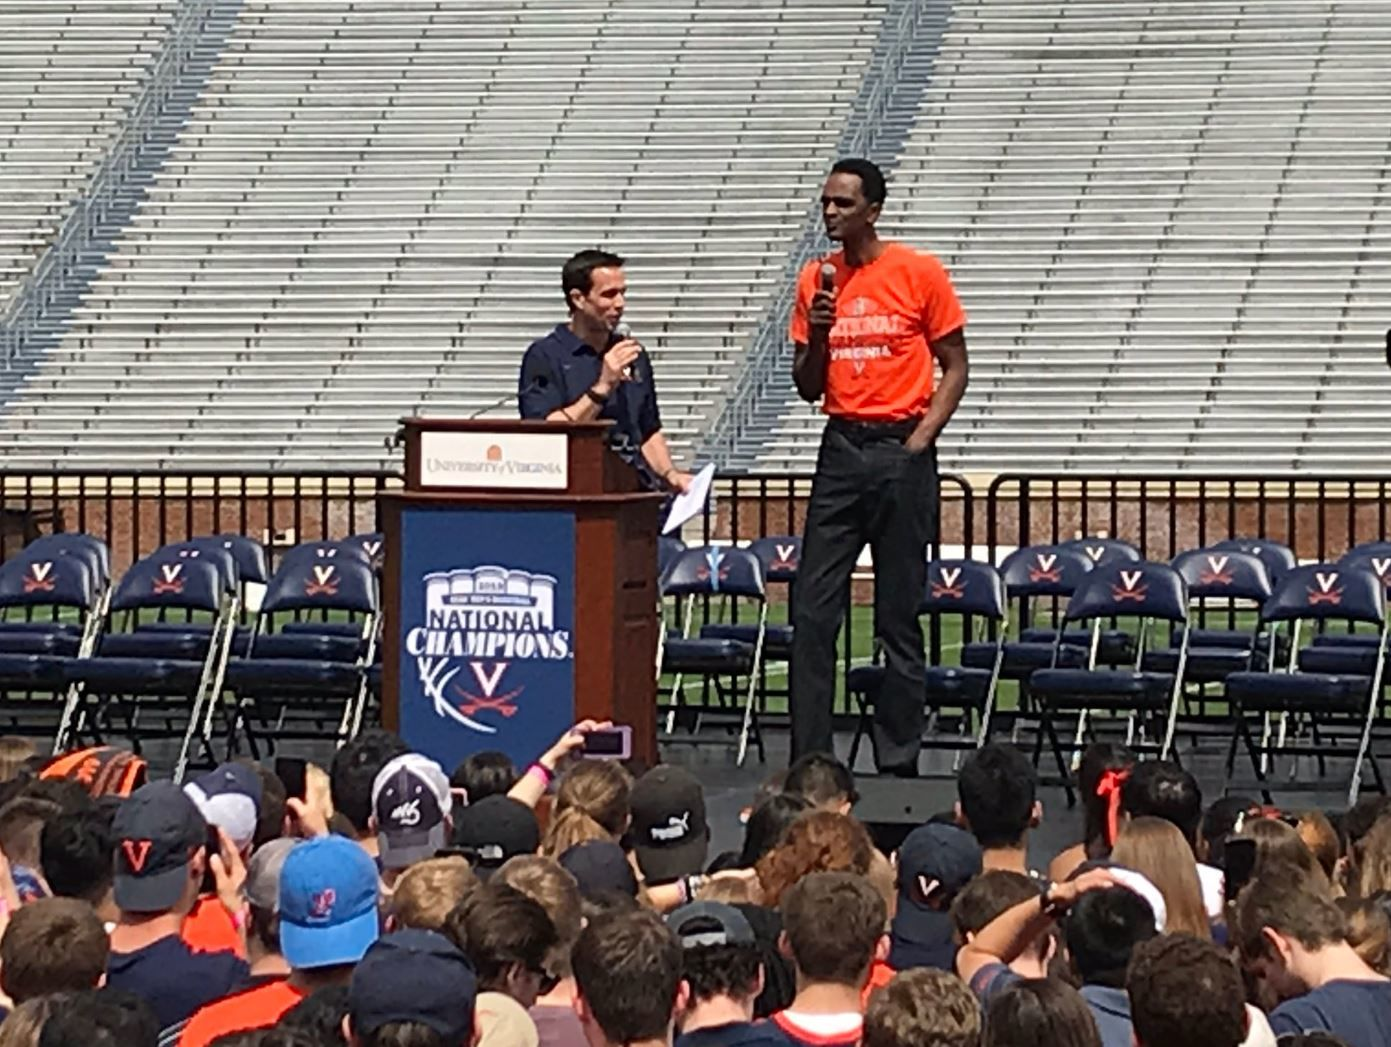 Virginia men's basketball coach Tony Bennett, left, introduces Ralph Sampson, who was part of the team that first made it to the Final Four, during a celebration in Charlottesville on Saturday, April 13, 2019. (WTOP/Michelle Basch)